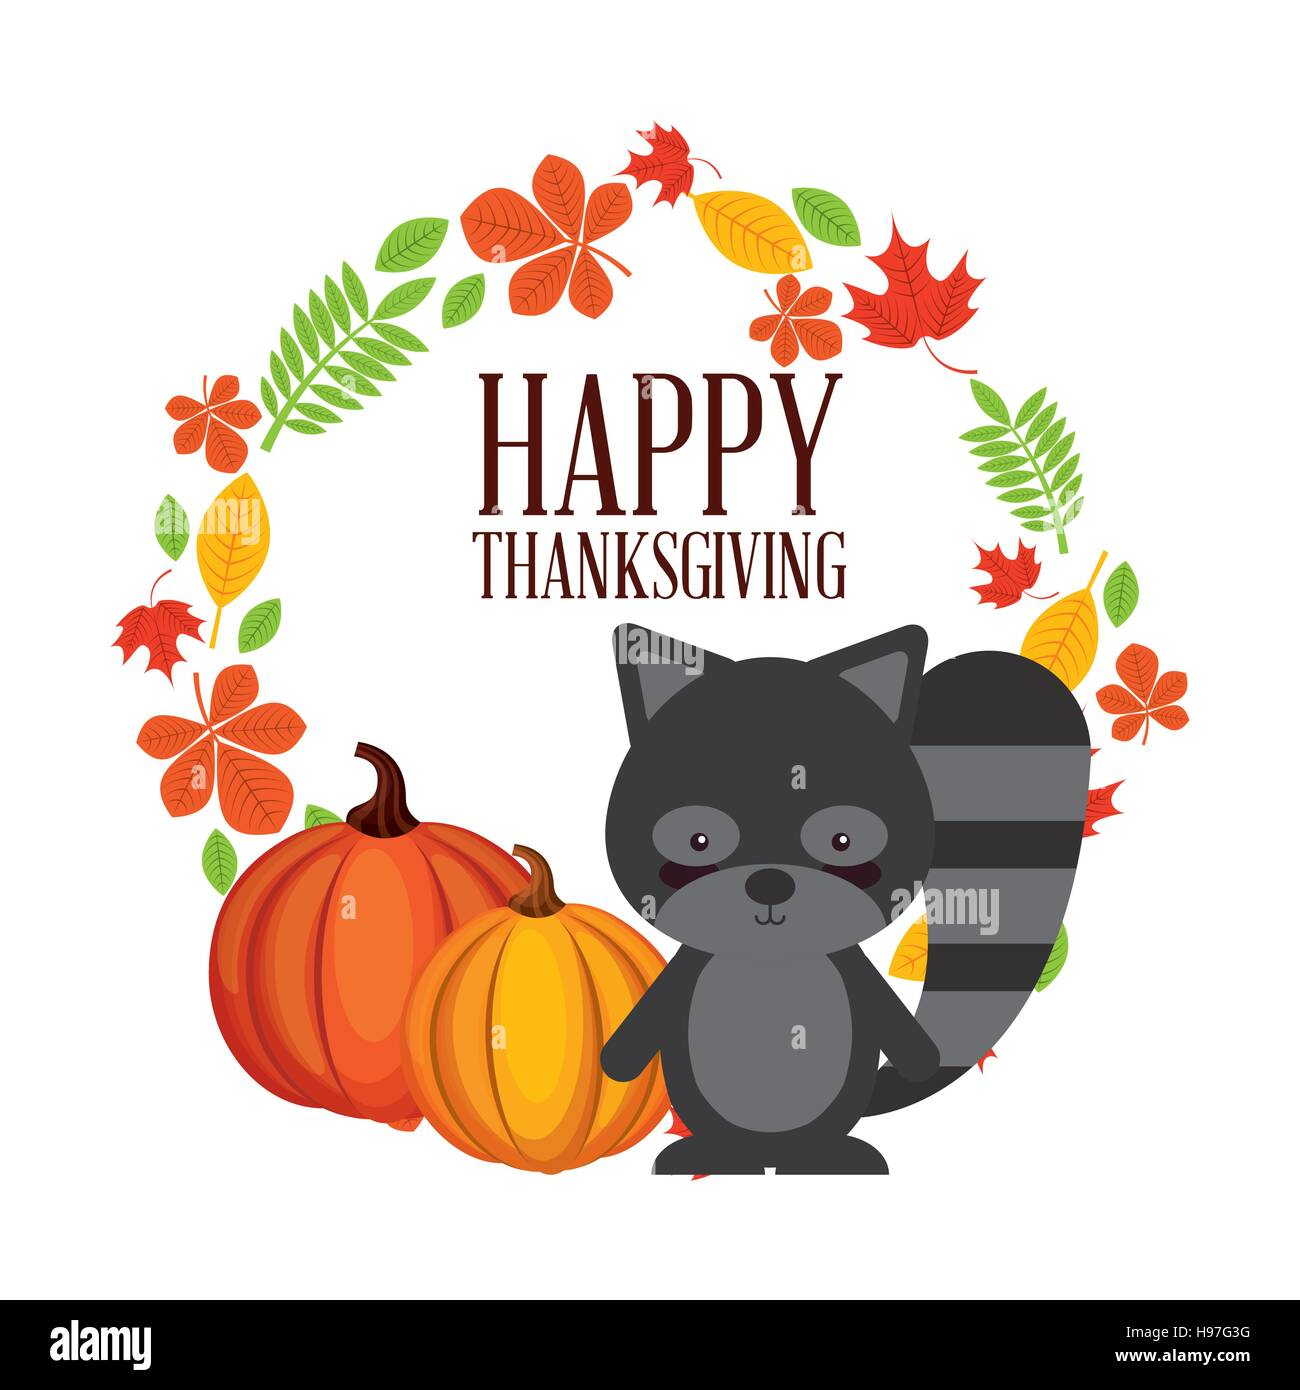 Happy Thanksgiving Card With Wreath Of Autumn Leaves And Cute Raccoon Stock Vector Image Art Alamy